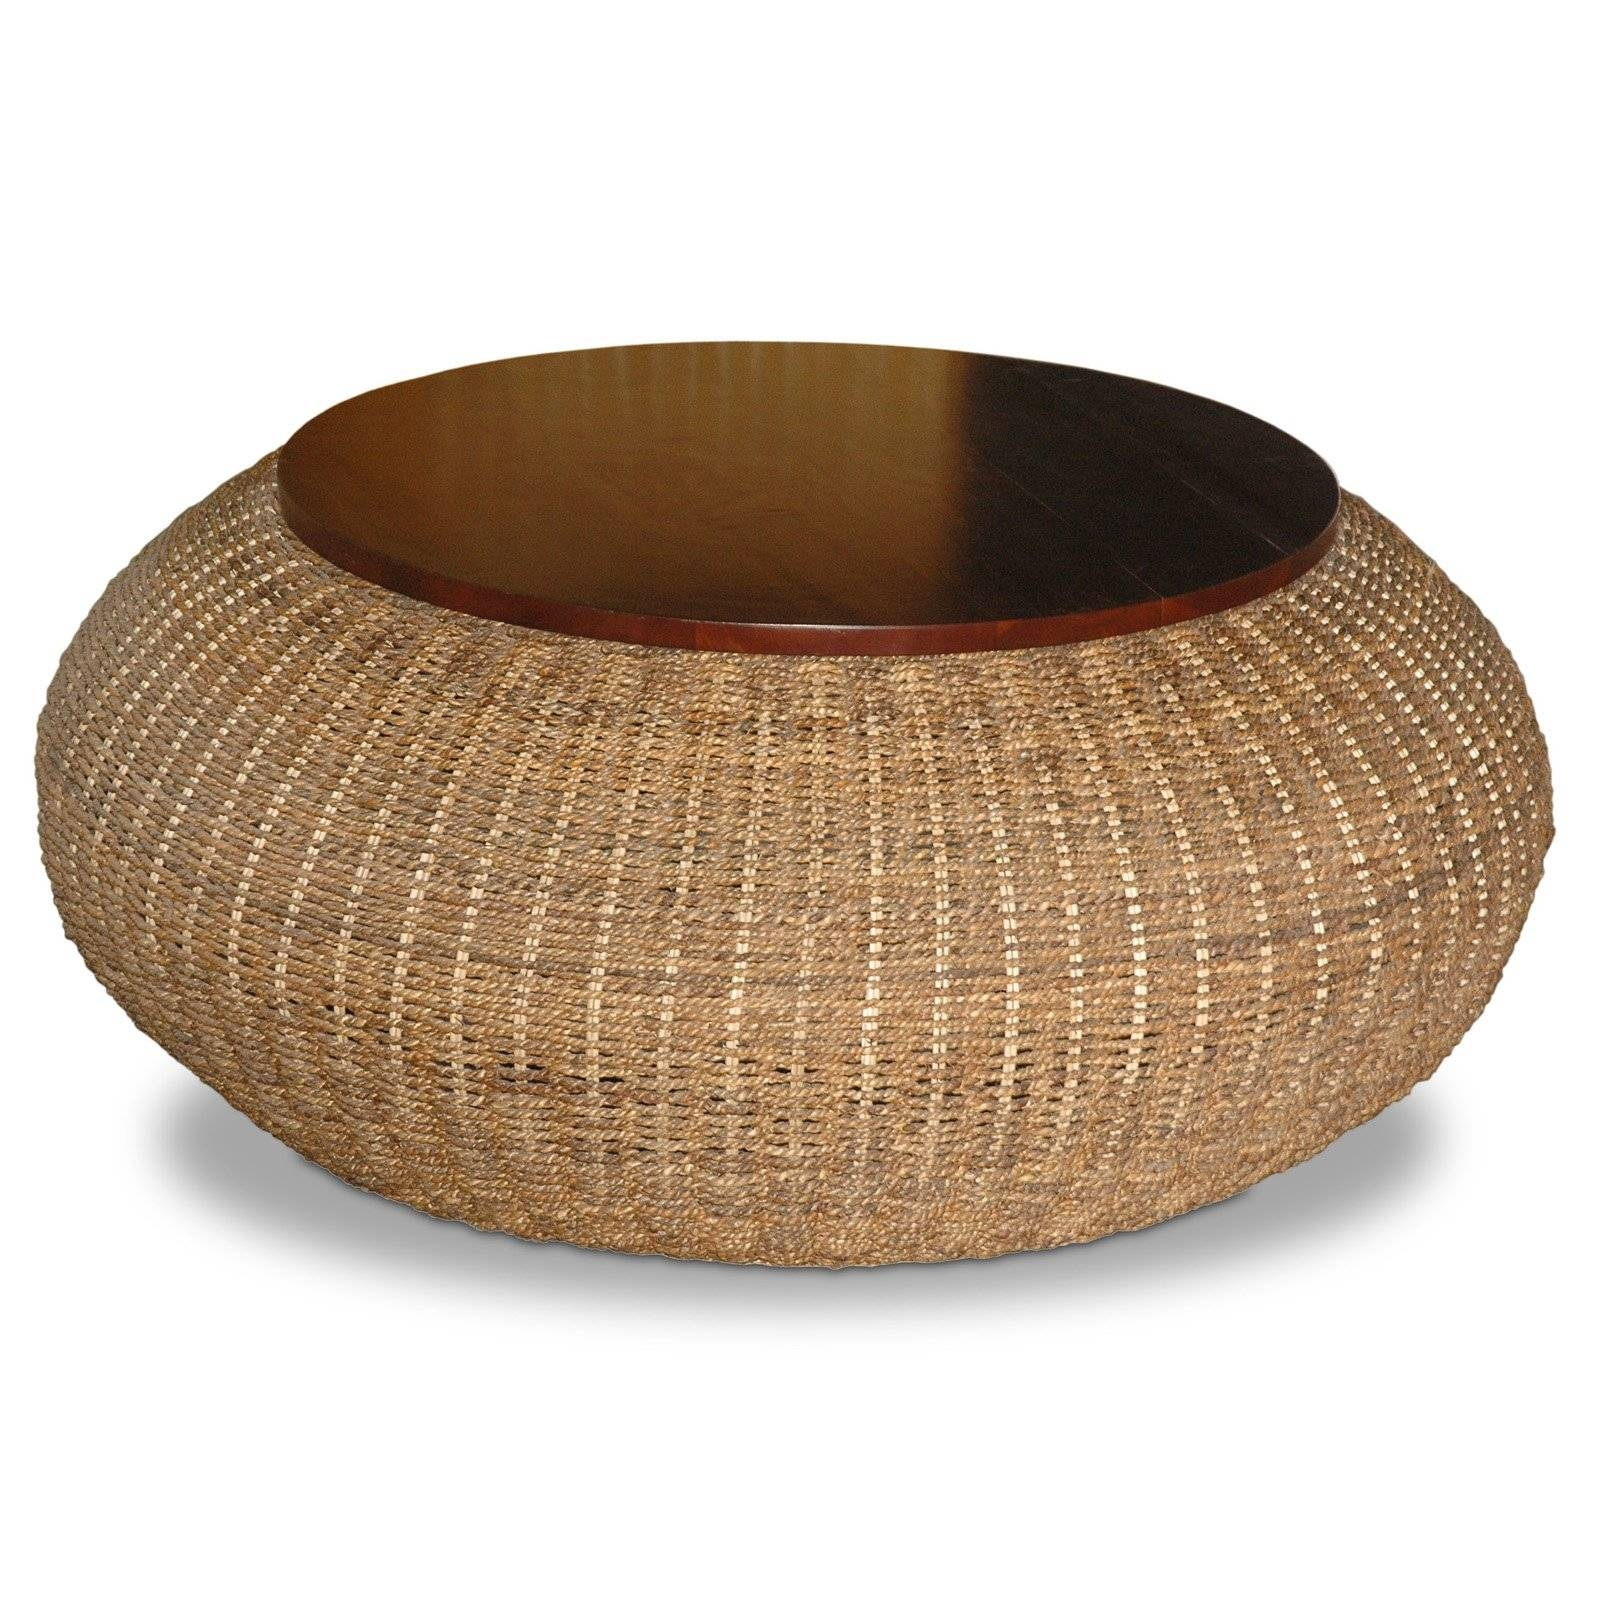 Things You Won't Miss Out If You Attend Round Wicker Coffee Tables within Stylish Coffee Tables (Image 29 of 30)